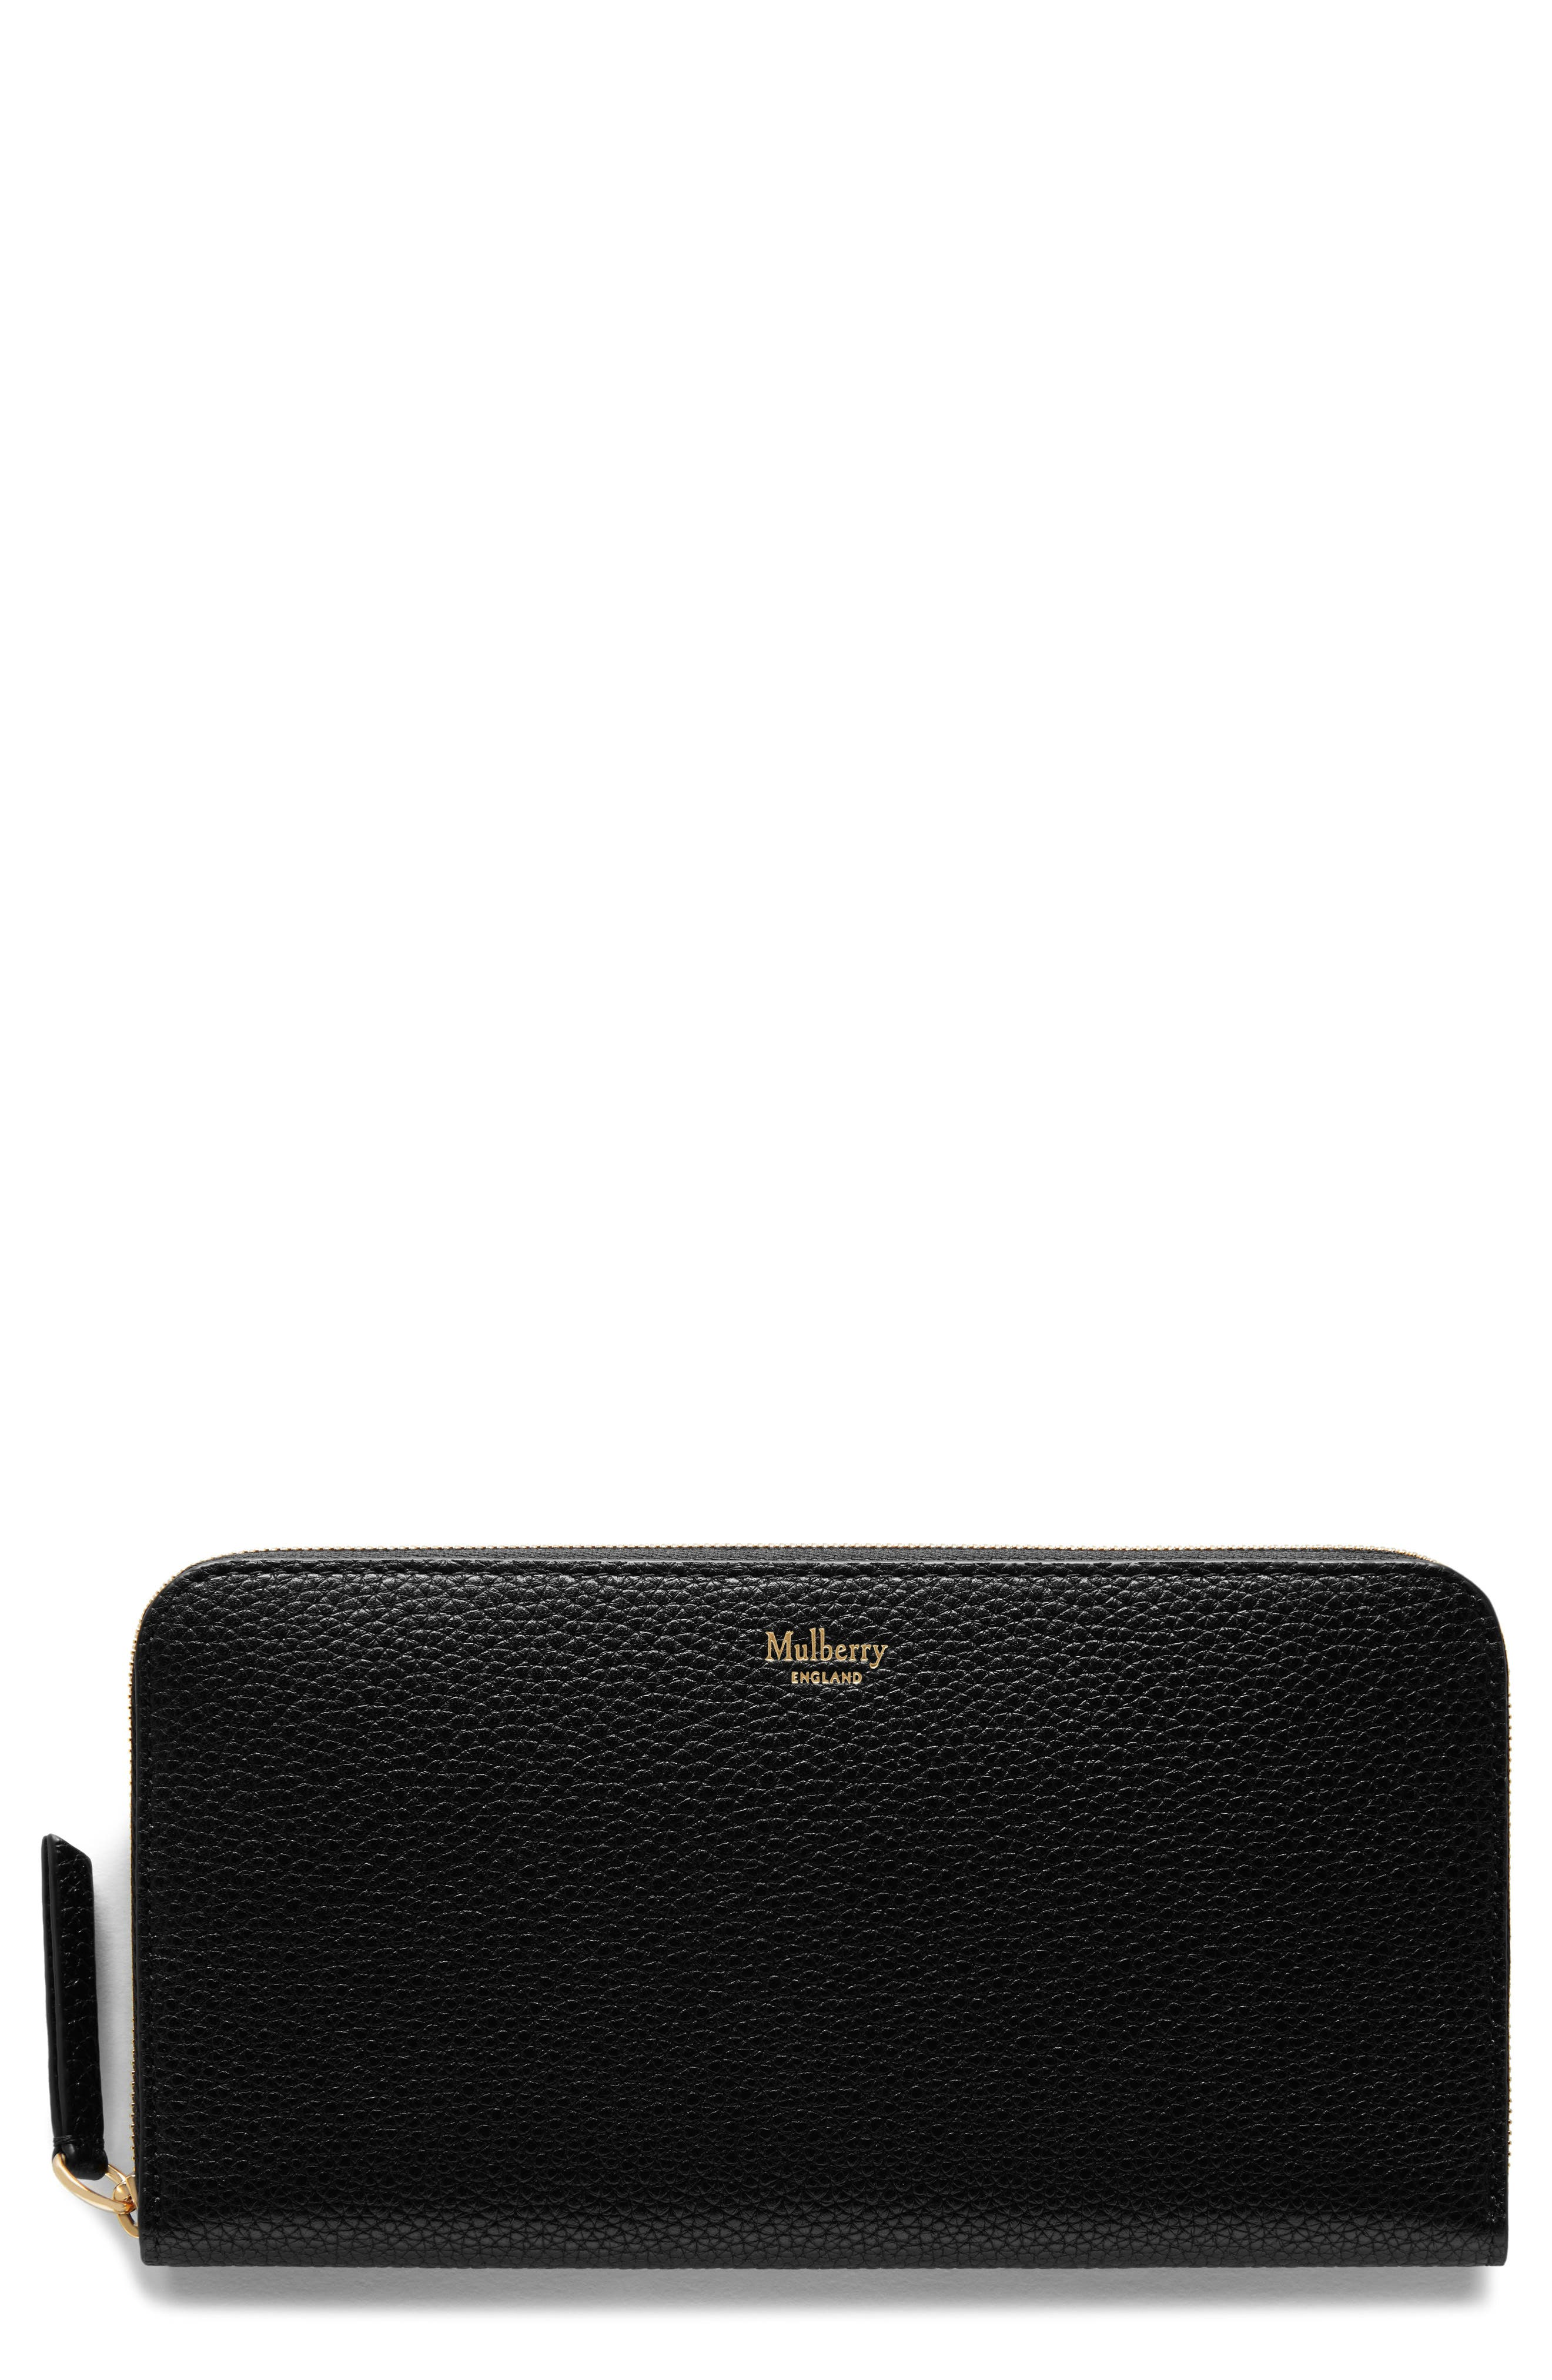 Zip Around Leather Wallet,                         Main,                         color, Black